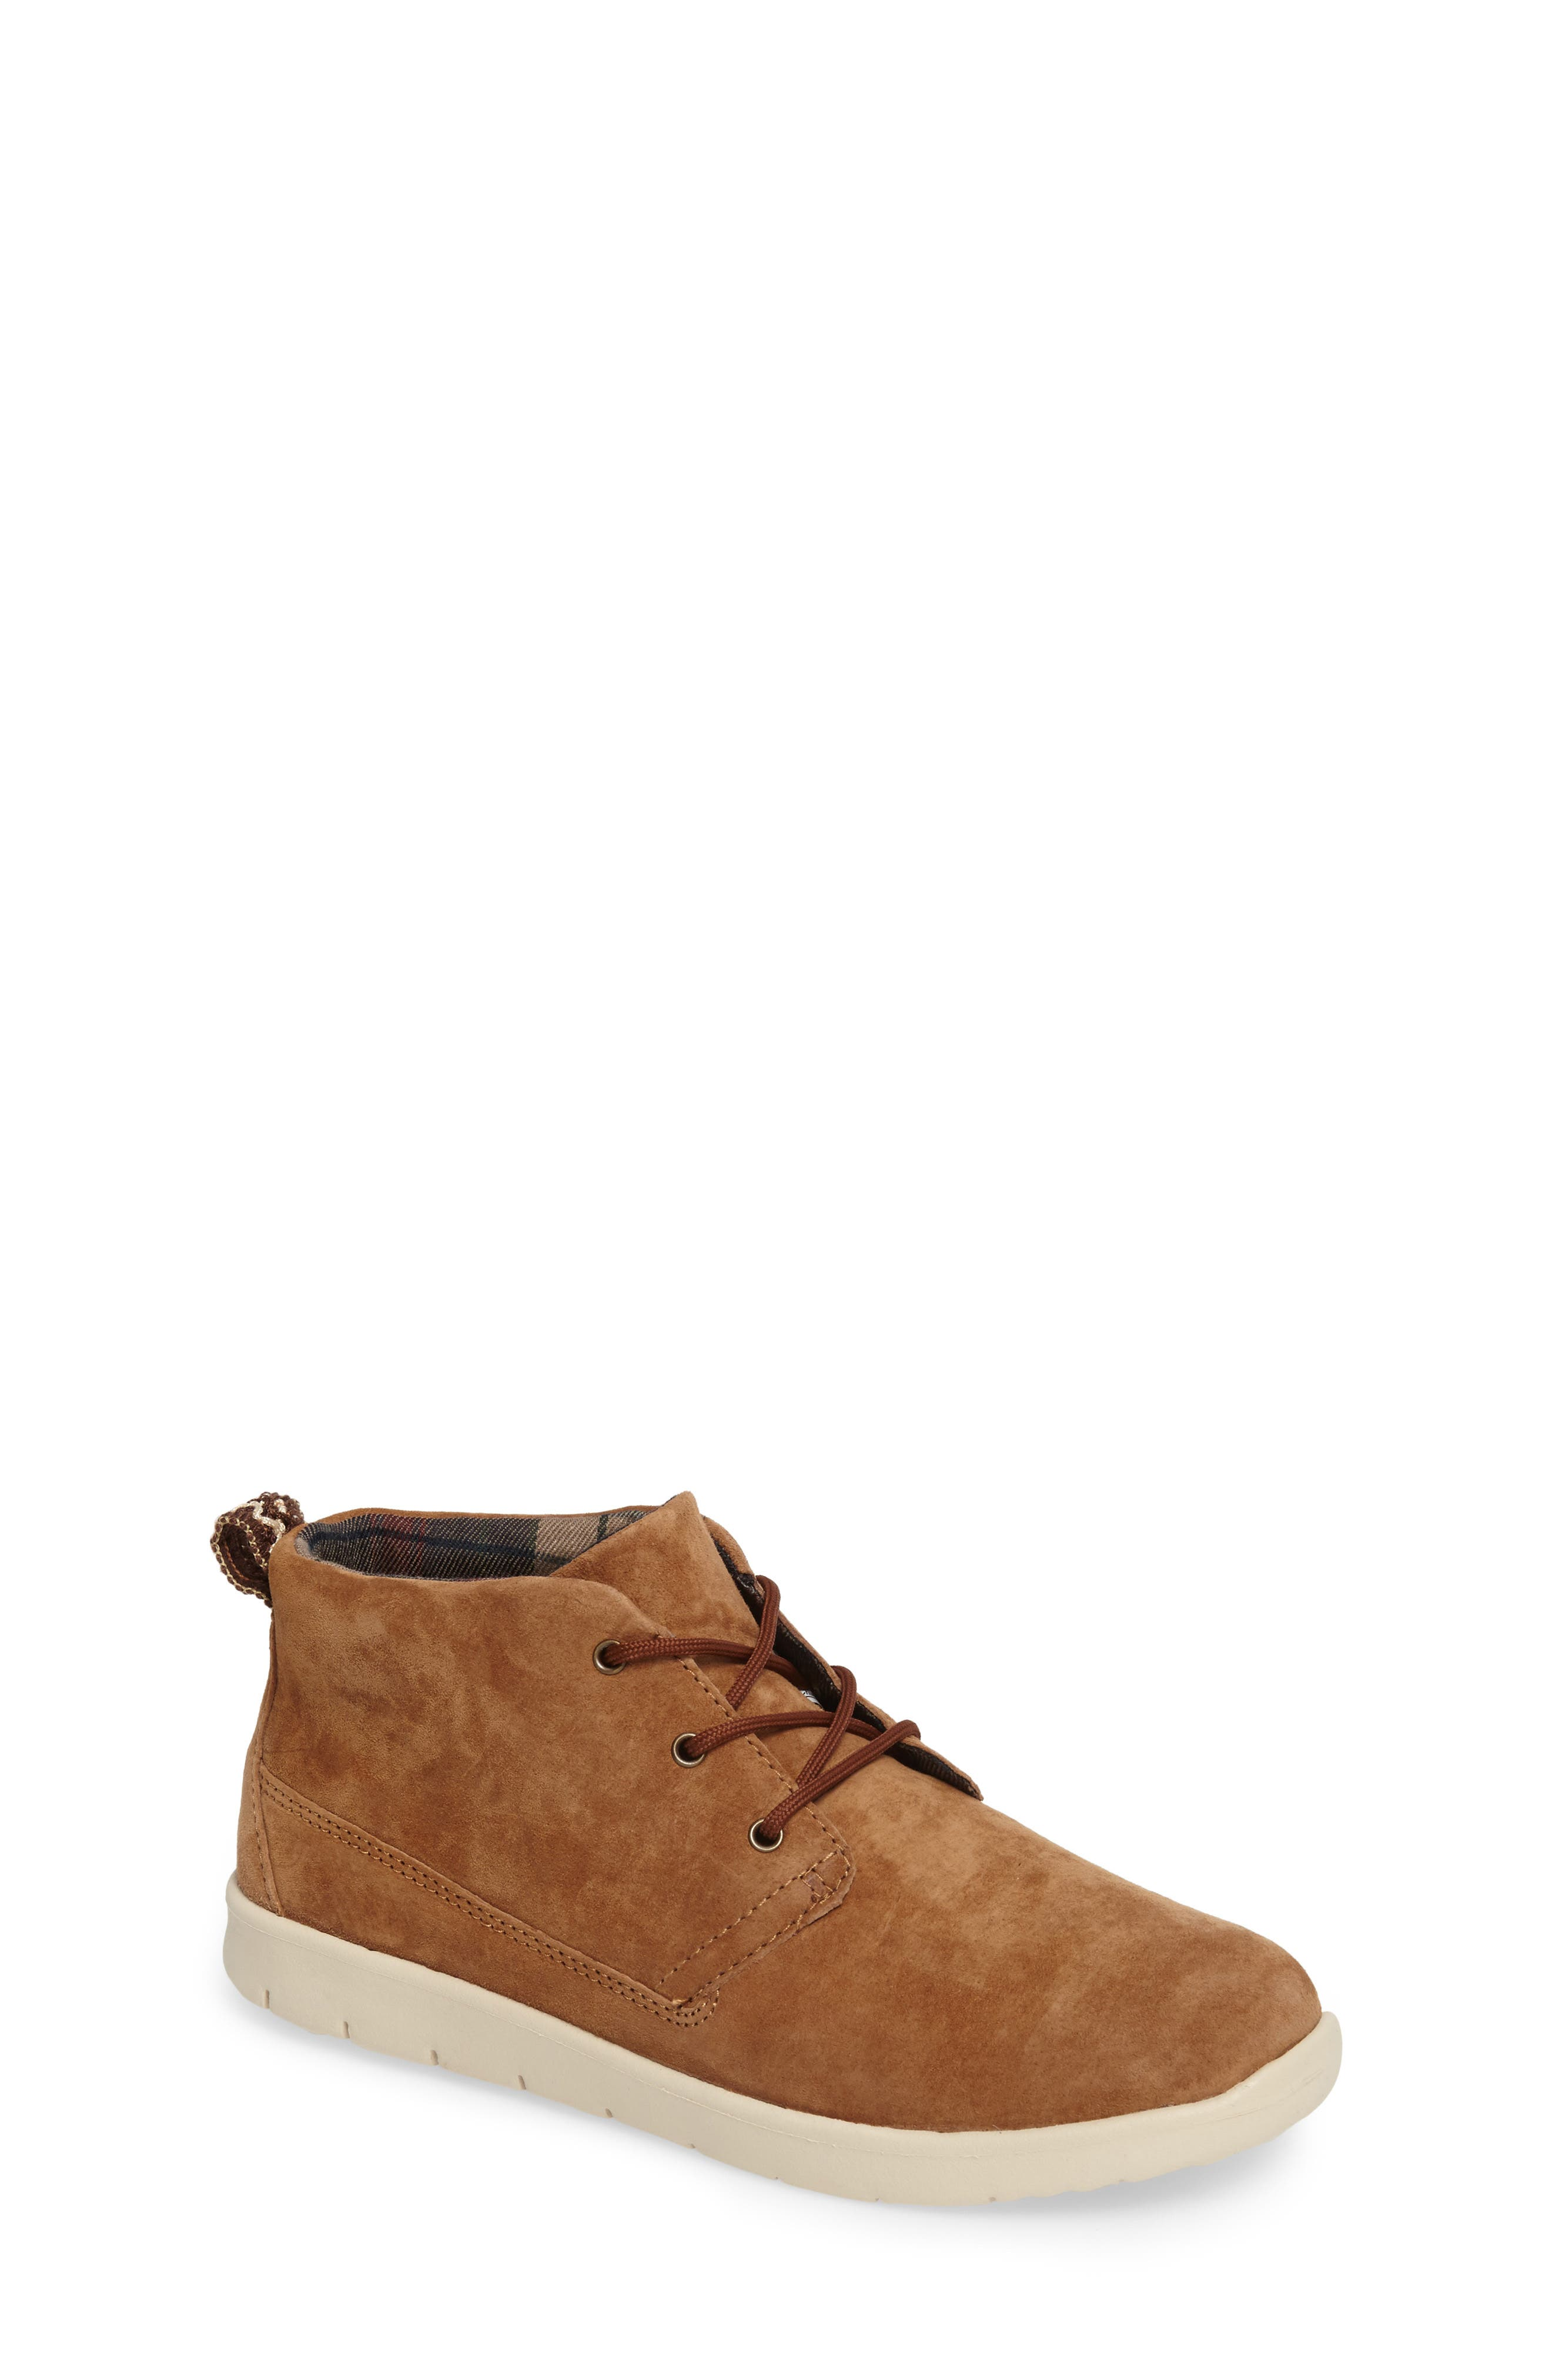 Main Image - UGG® Canoe Chukka Boot (Walker, Toddler, Little Kid & Big Kid)